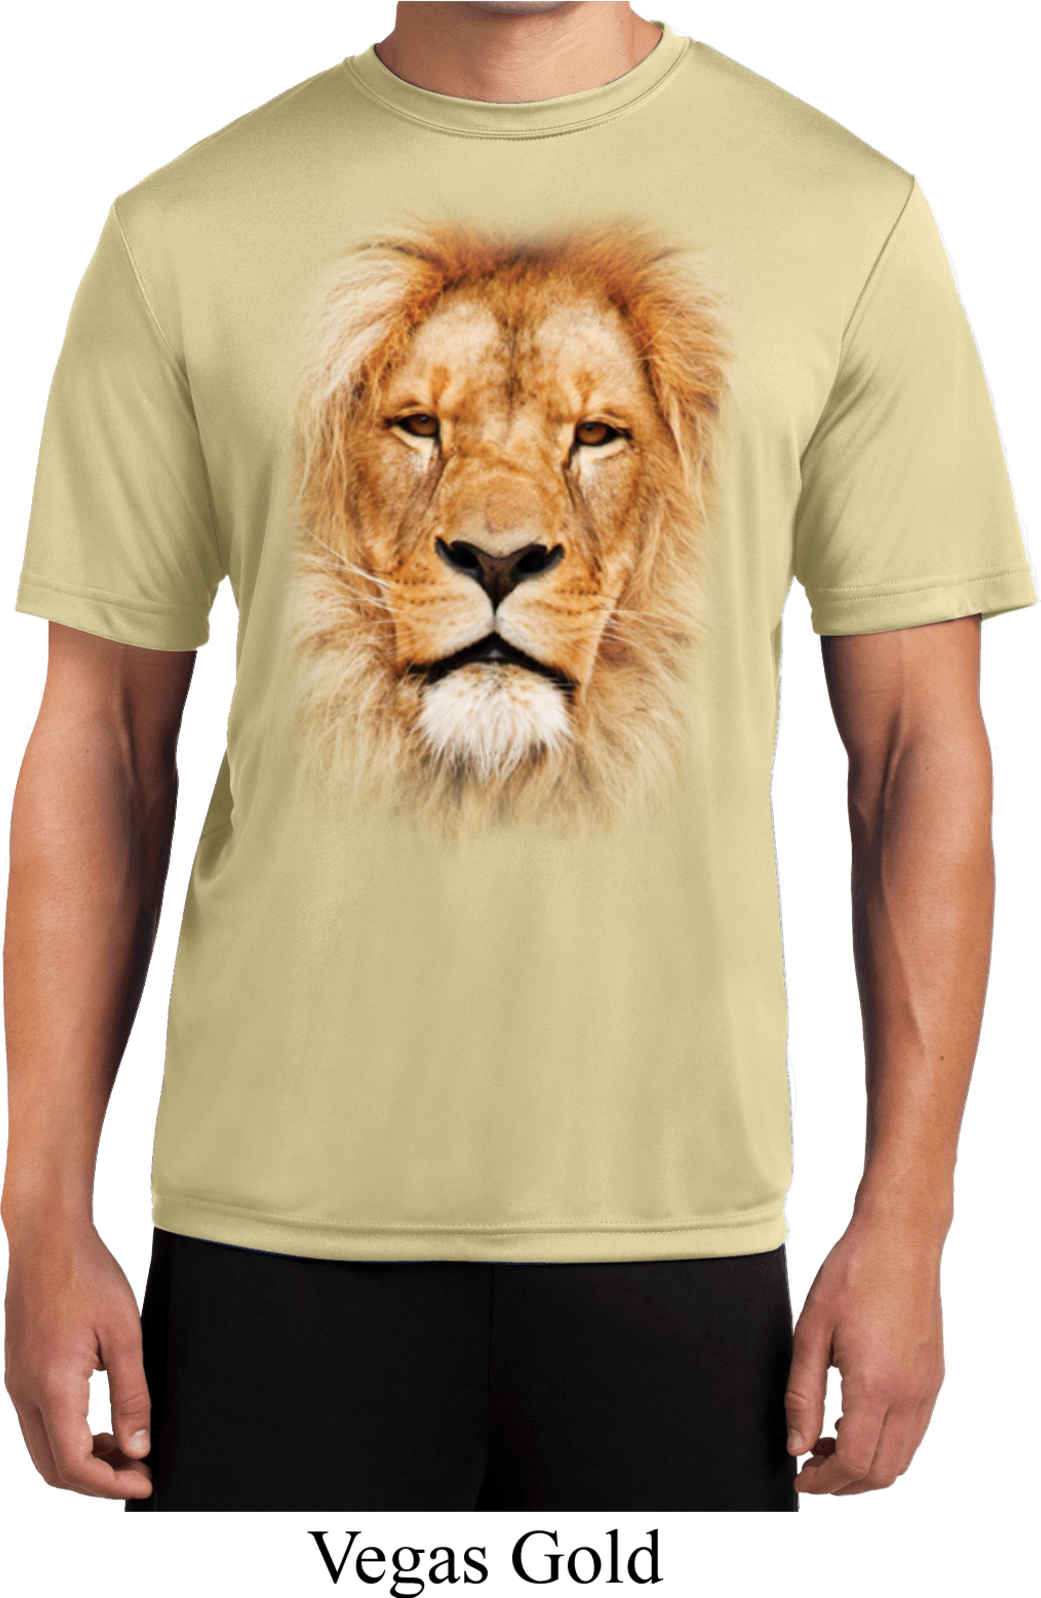 Mens shirt big lion face moisture wicking tee t shirt for Bc lions t shirts